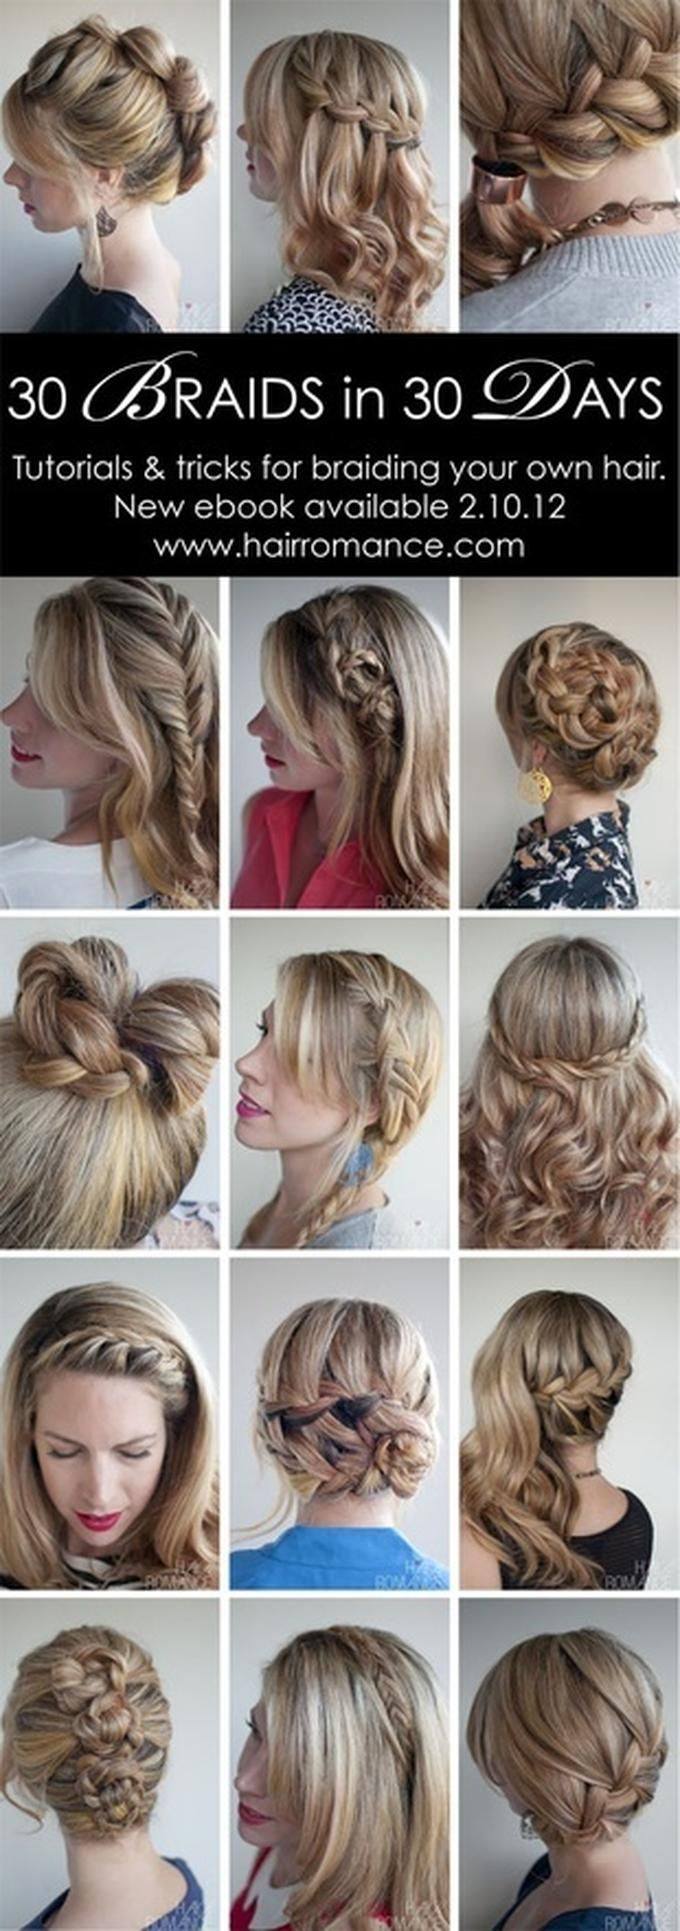 best isi hair style images on pinterest hair makeup cute